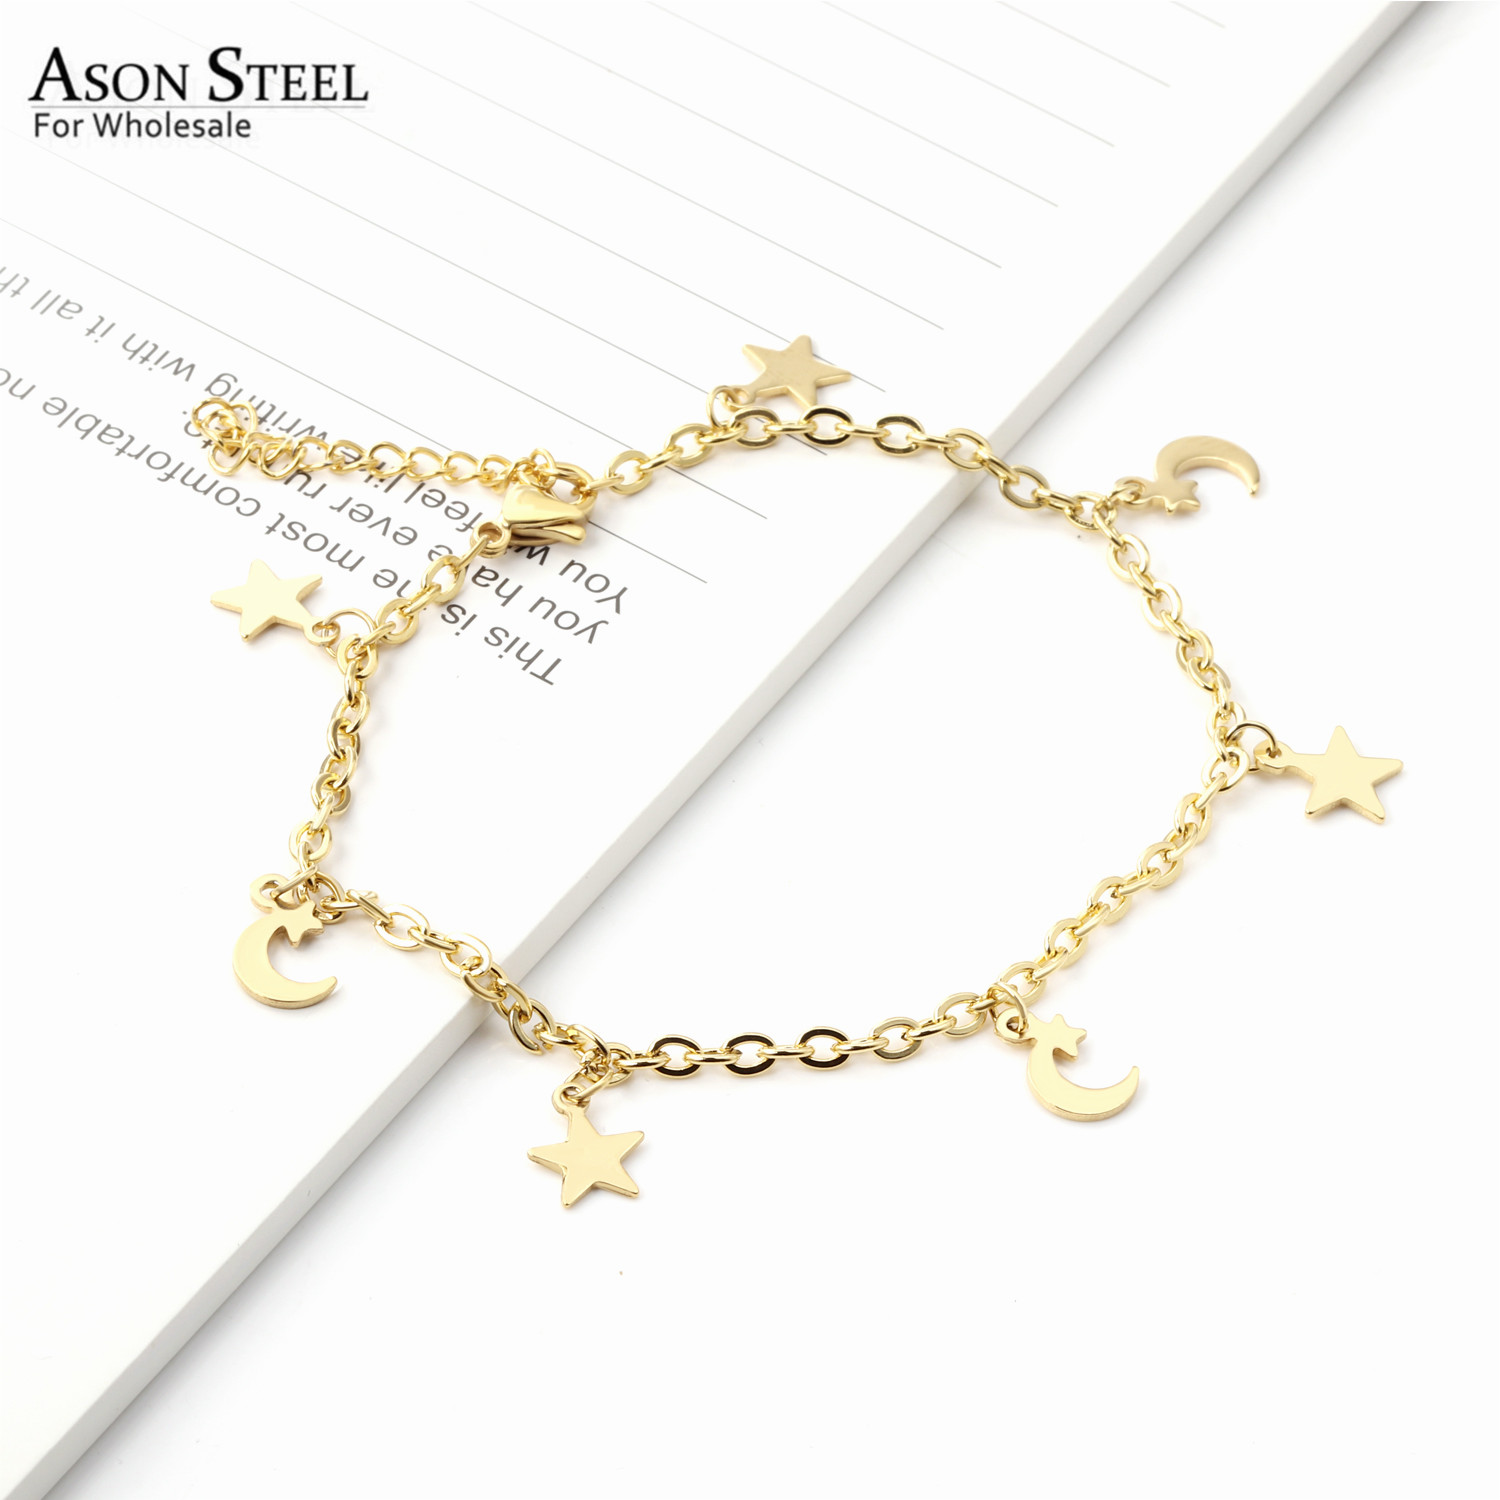 ASONSTEEL Charming 316L Stainless Steel Barefoot Chain Gold Color Star Moon Anklet for Women Gift Foot Chain Accessories Jewelry